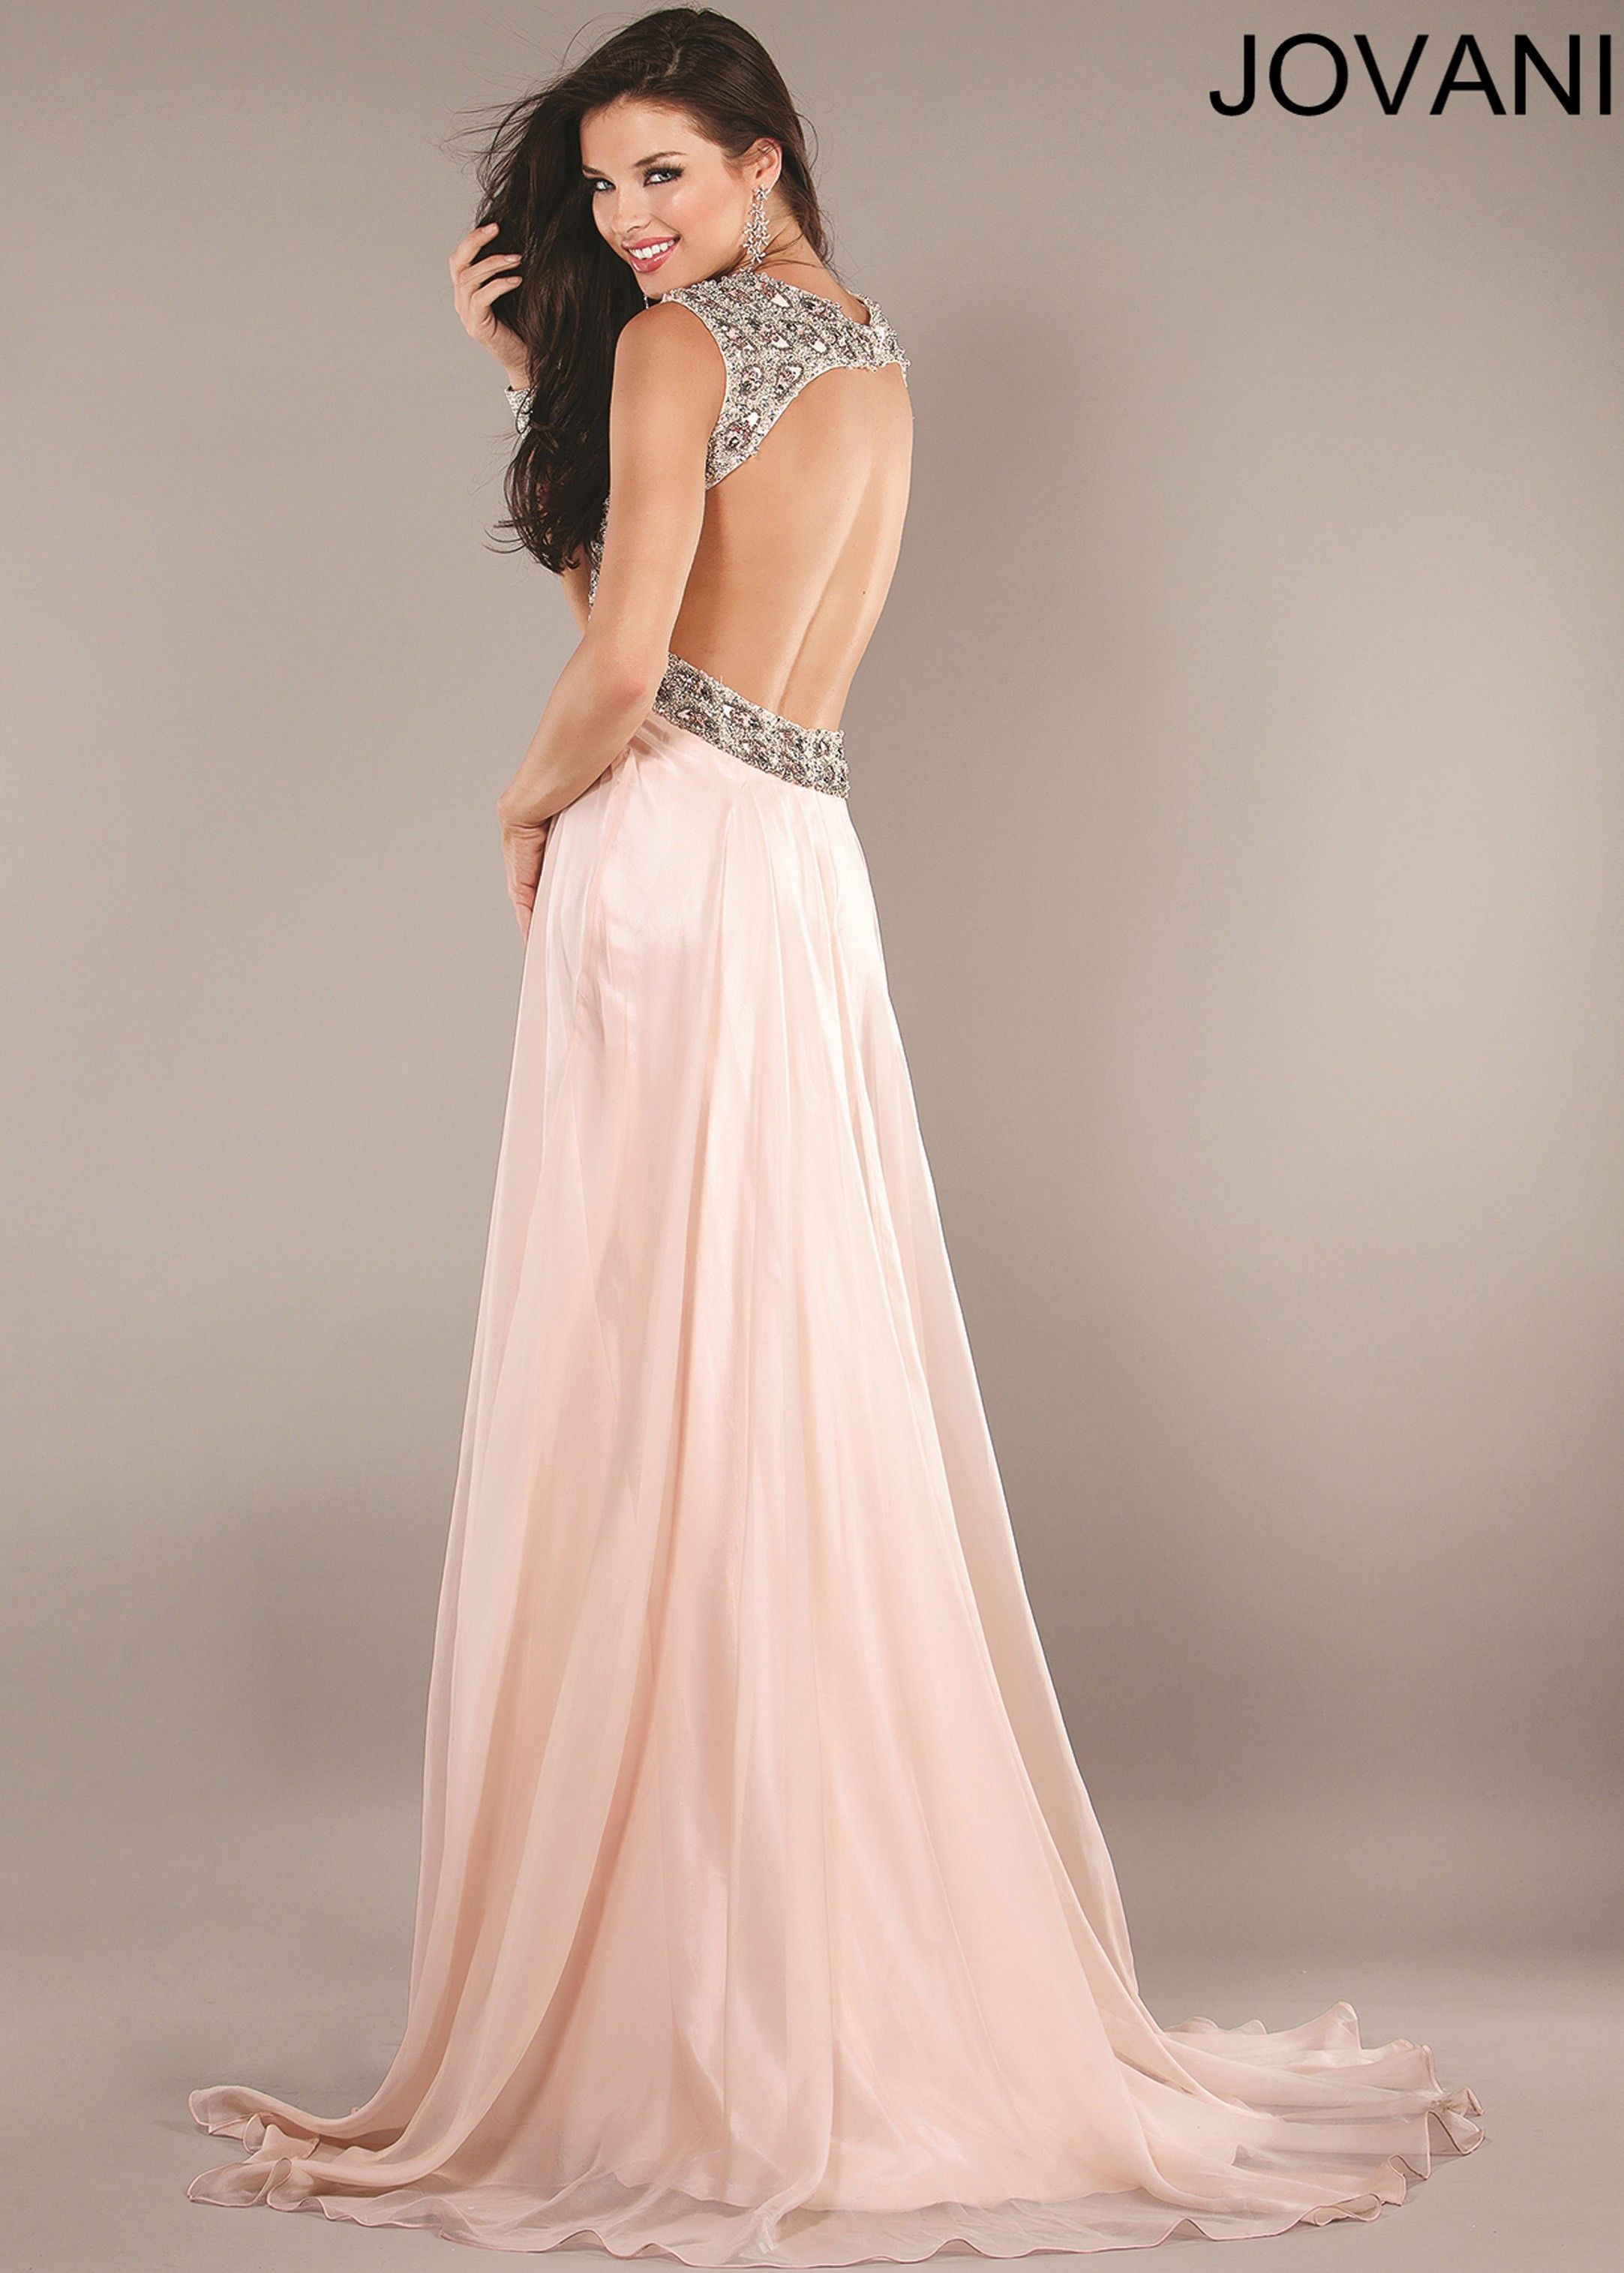 Blush Colored Wedding Gowns Blush Halter Evening Gown 1929